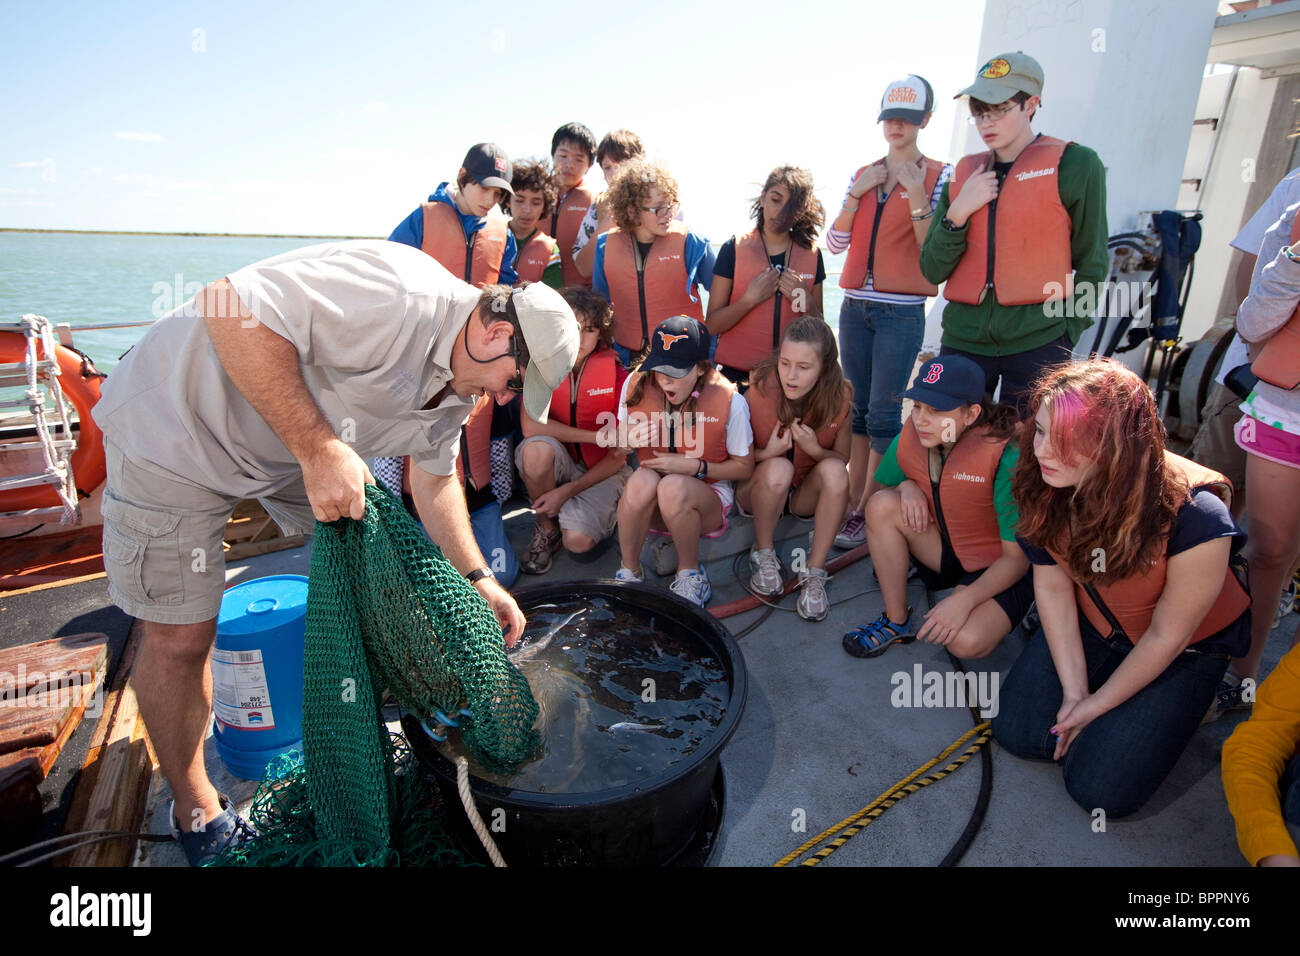 Marine biologist puts catfish in a tank to show middle school students on board a research vessel during class field - Stock Image